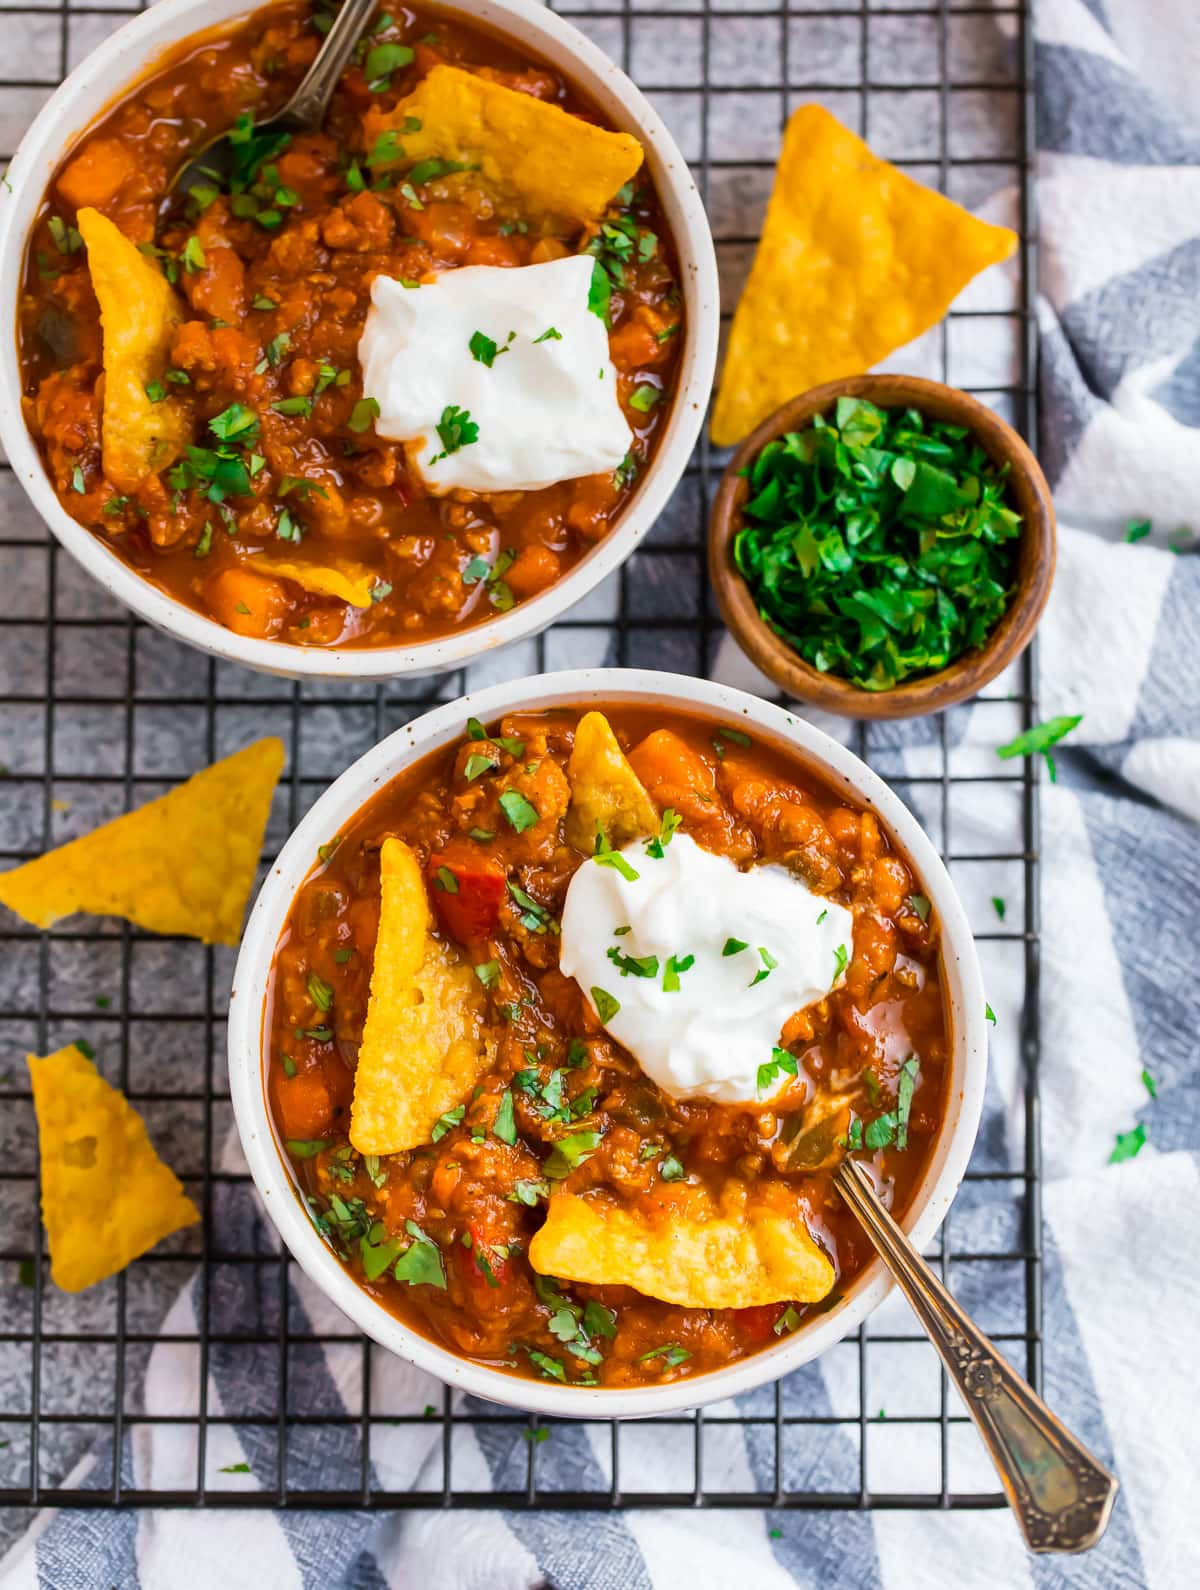 Two bowls of chili with turkey and pumpkin